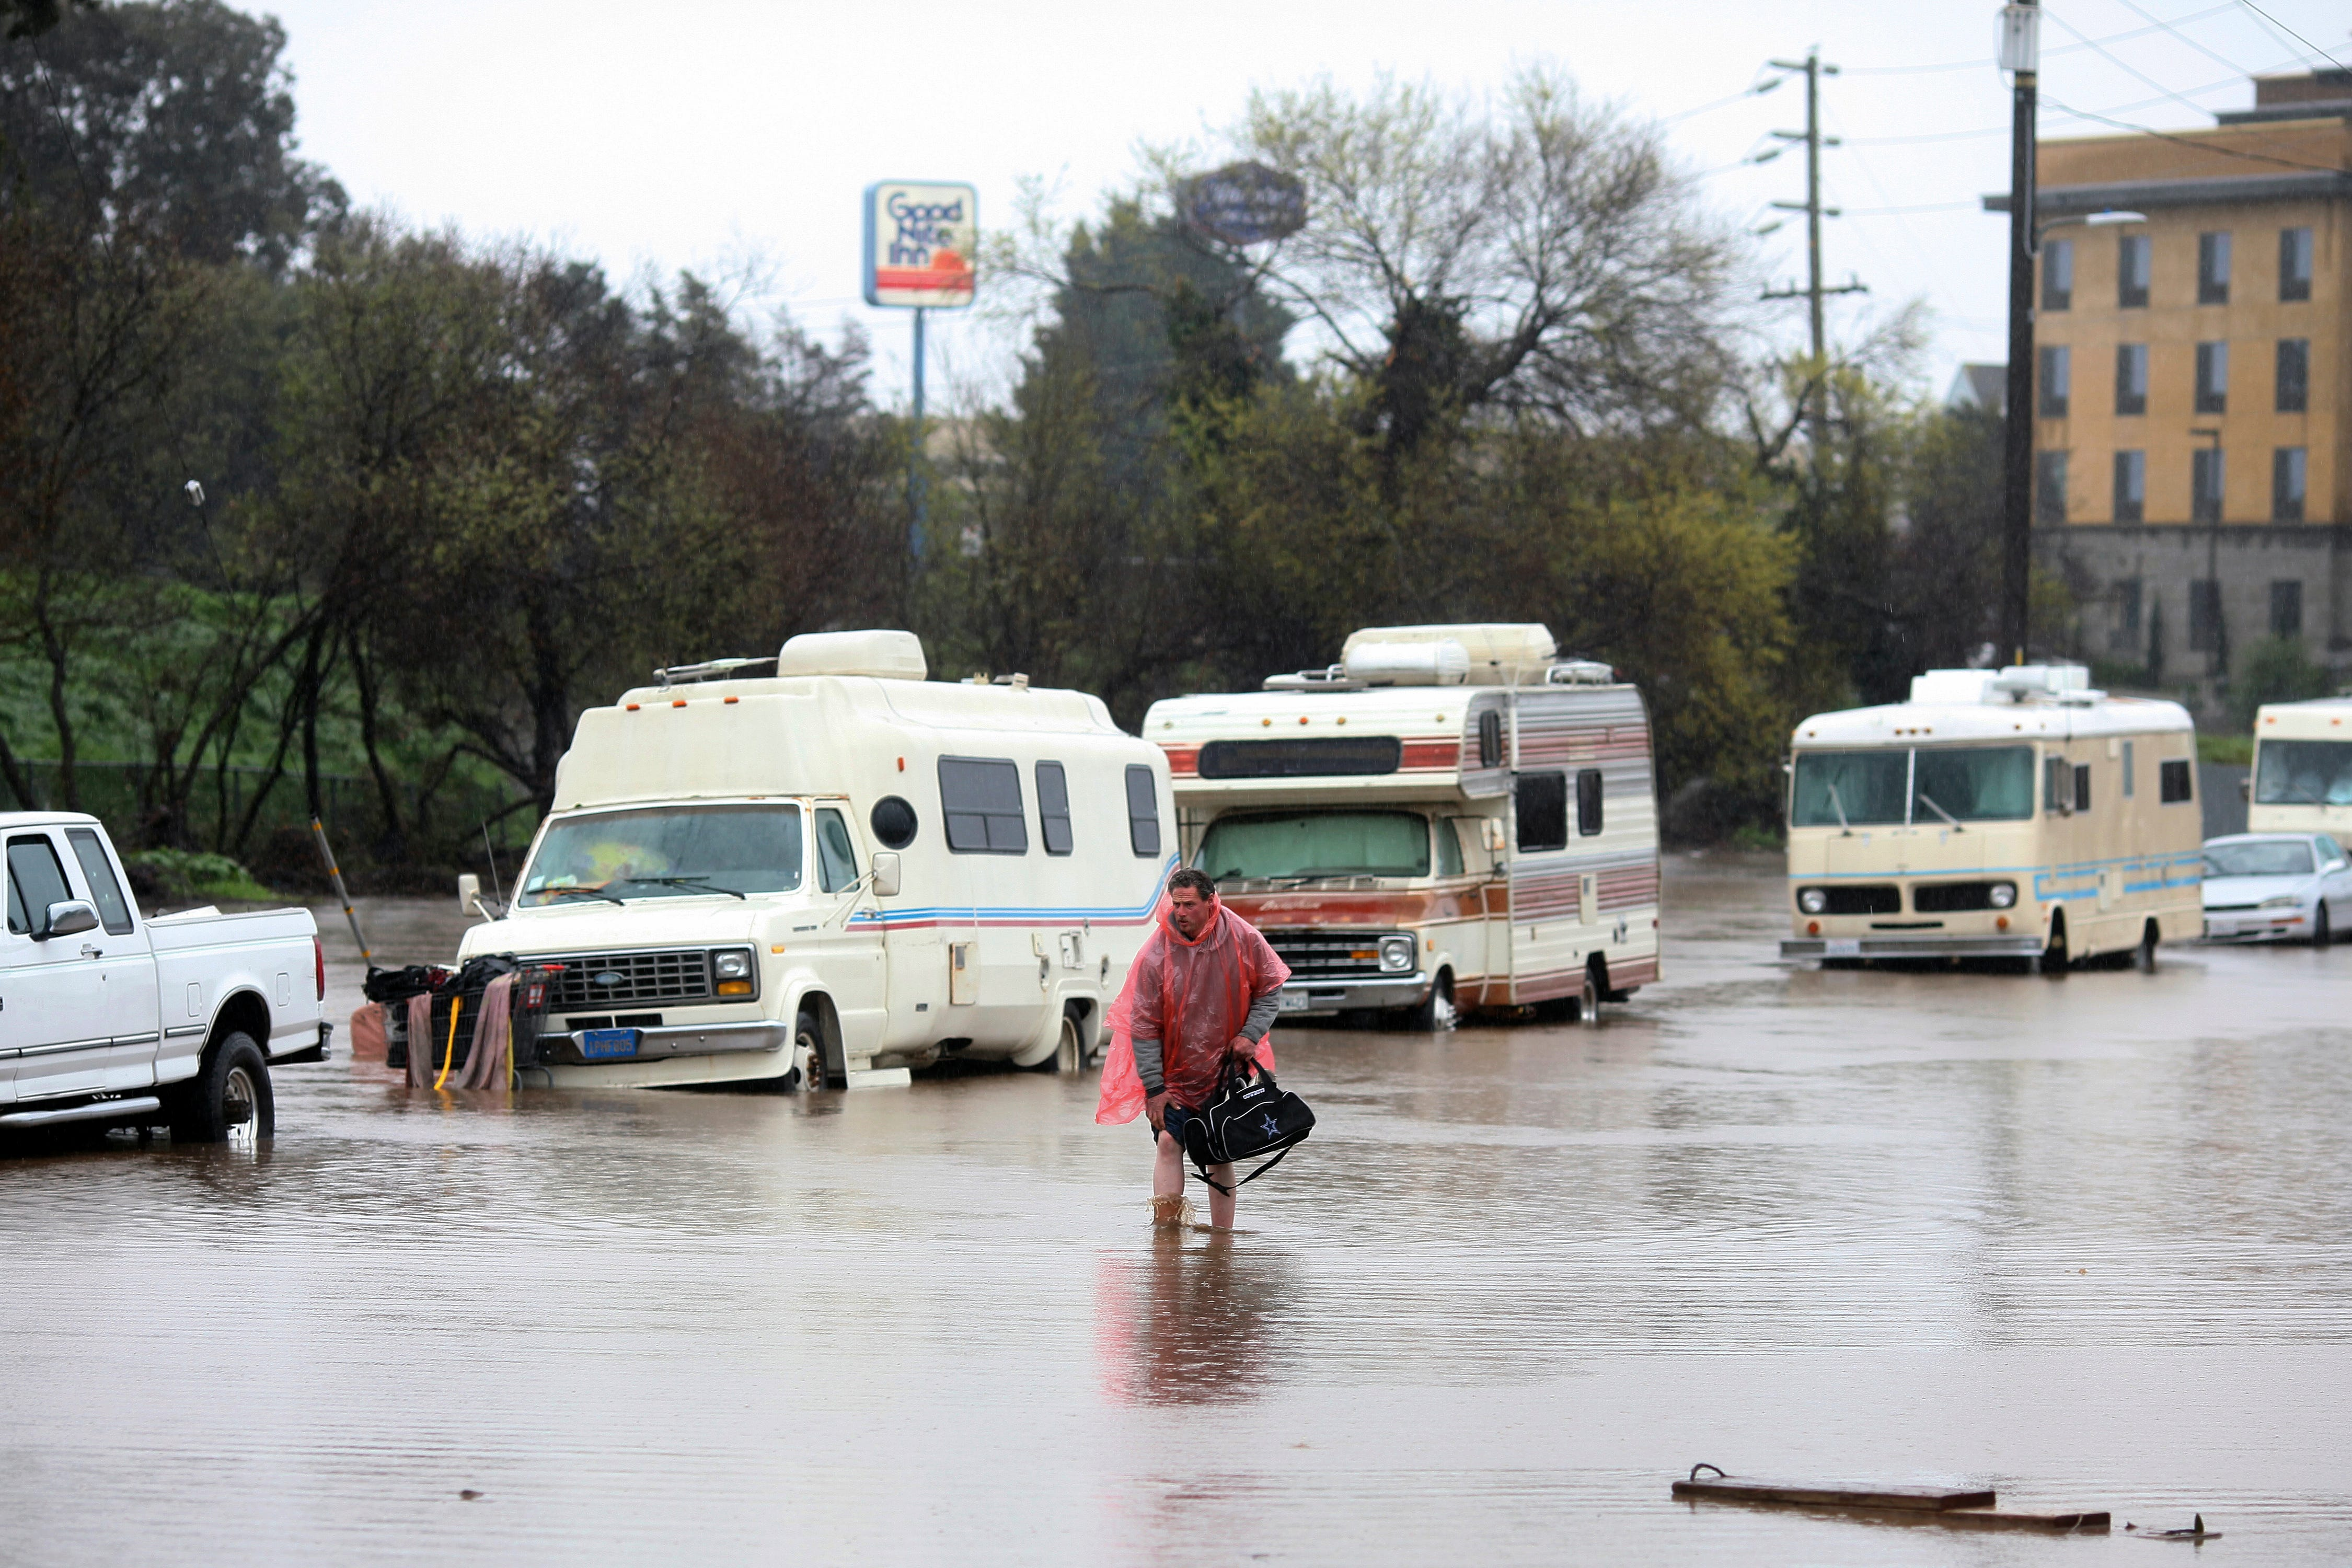 In San Jose, dramatic rescues as hundreds flee rising floodwaters